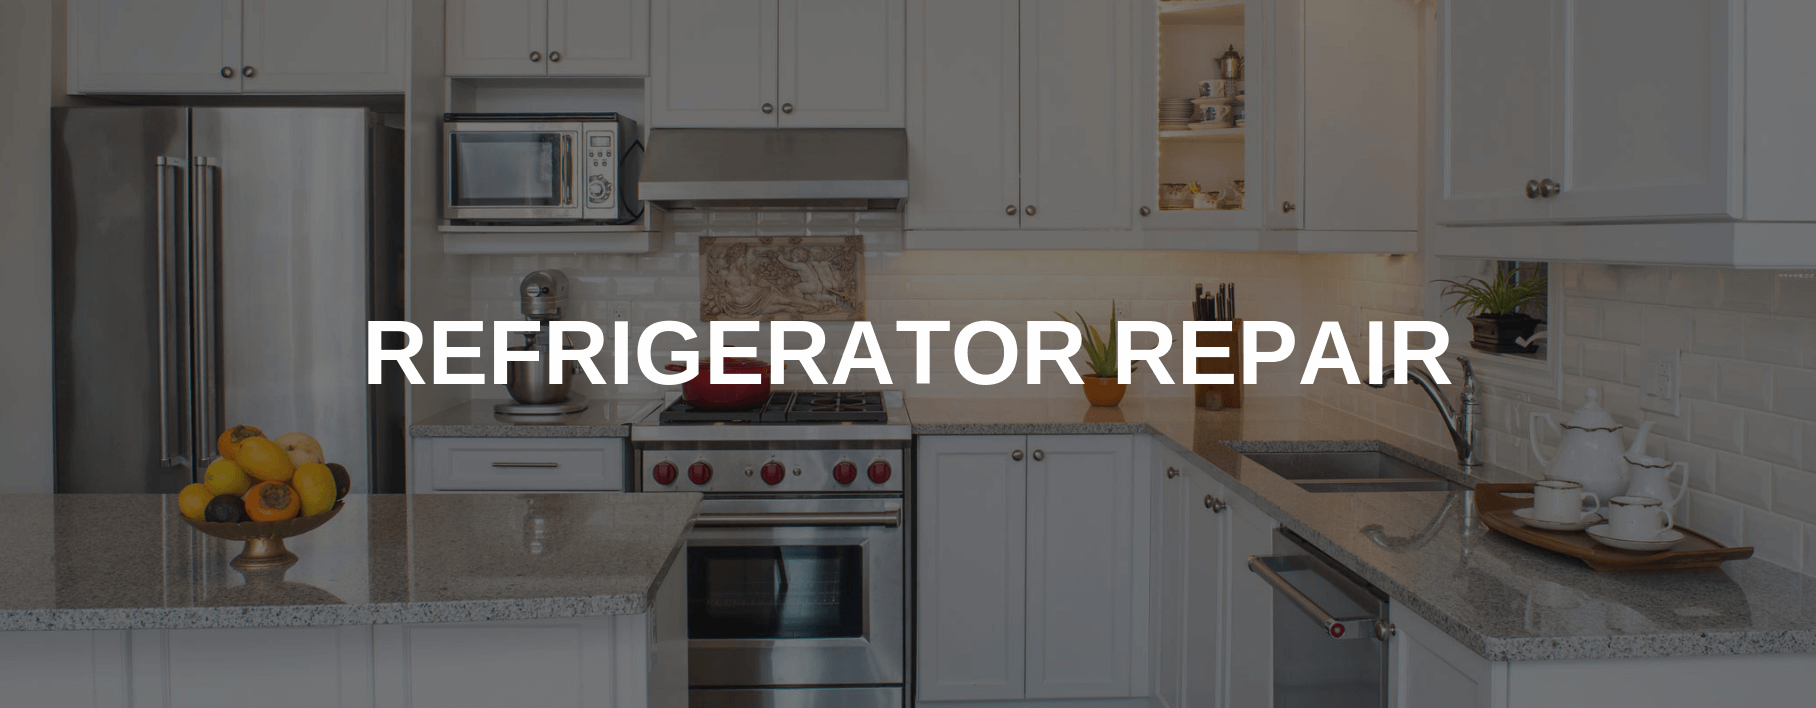 refrigerator repair eugene or